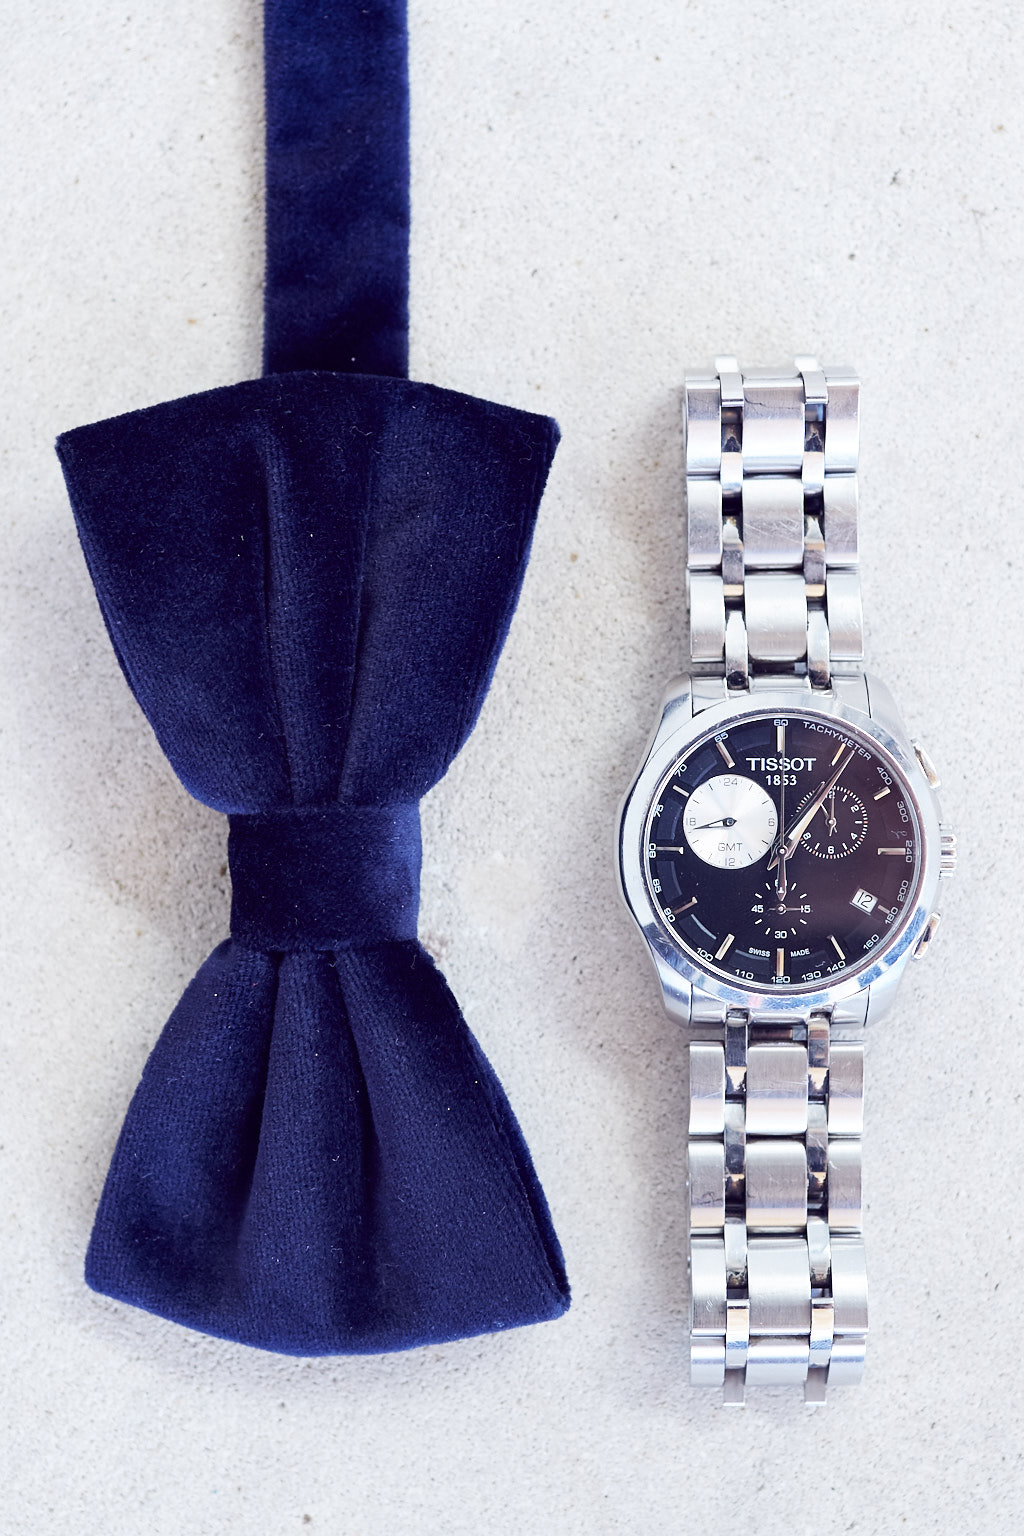 Tissot Timepiece paired with a velvet blue bowtie.